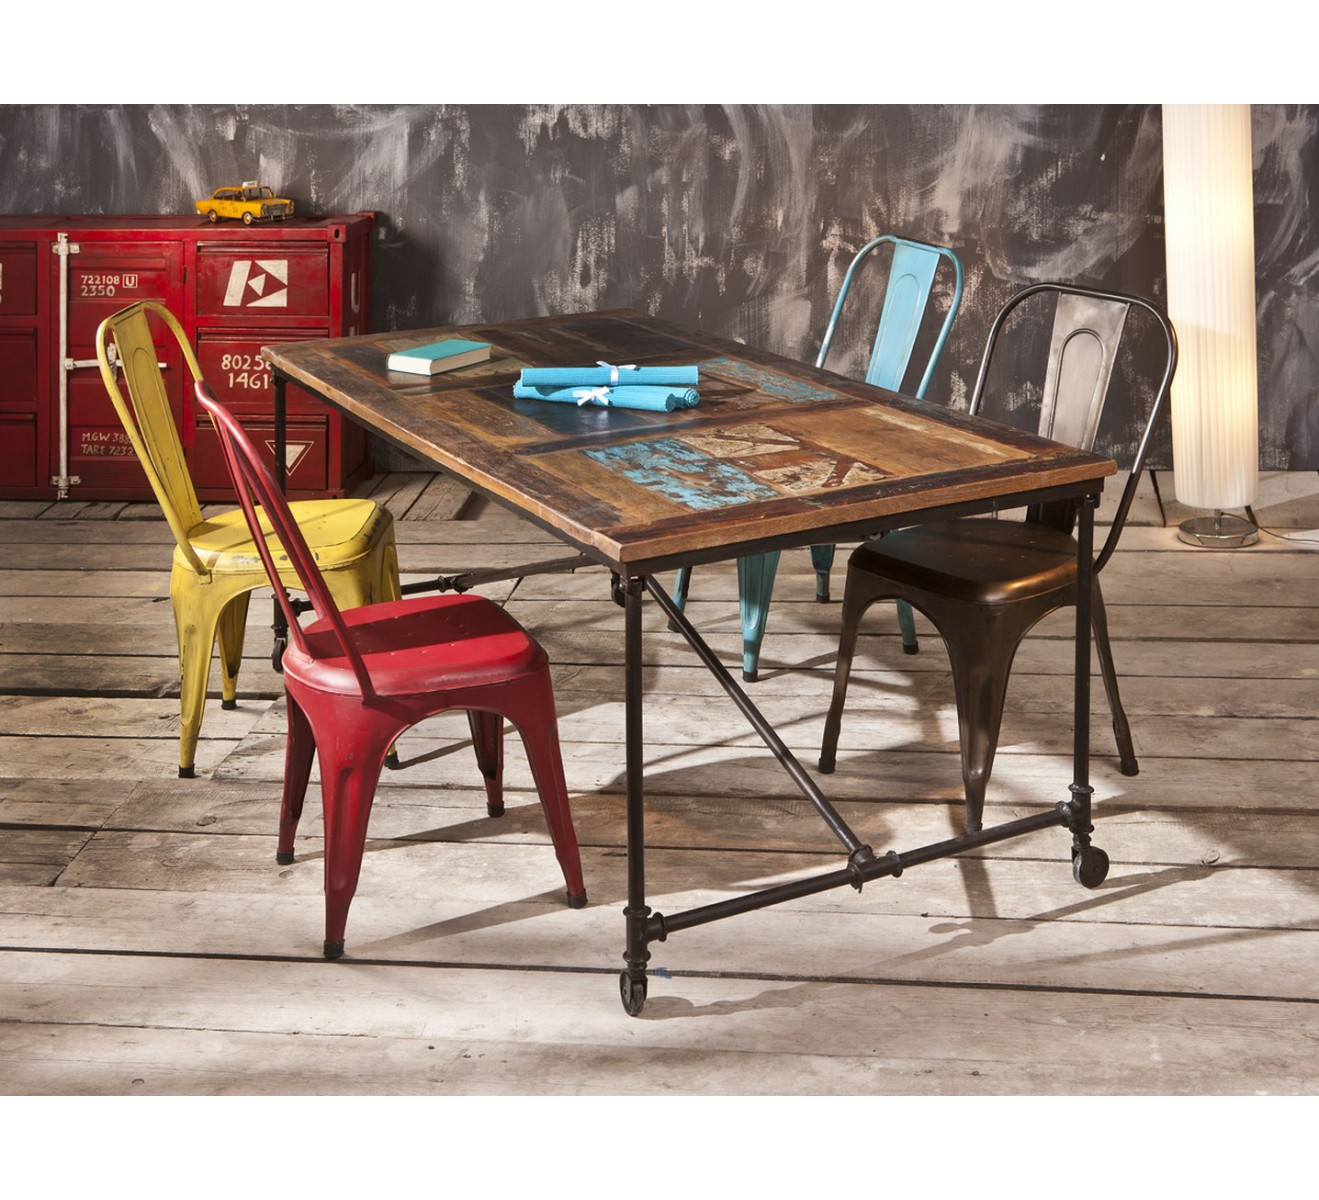 Table industrielle m tal et bois recycl docker 6892 for Table metal et bois